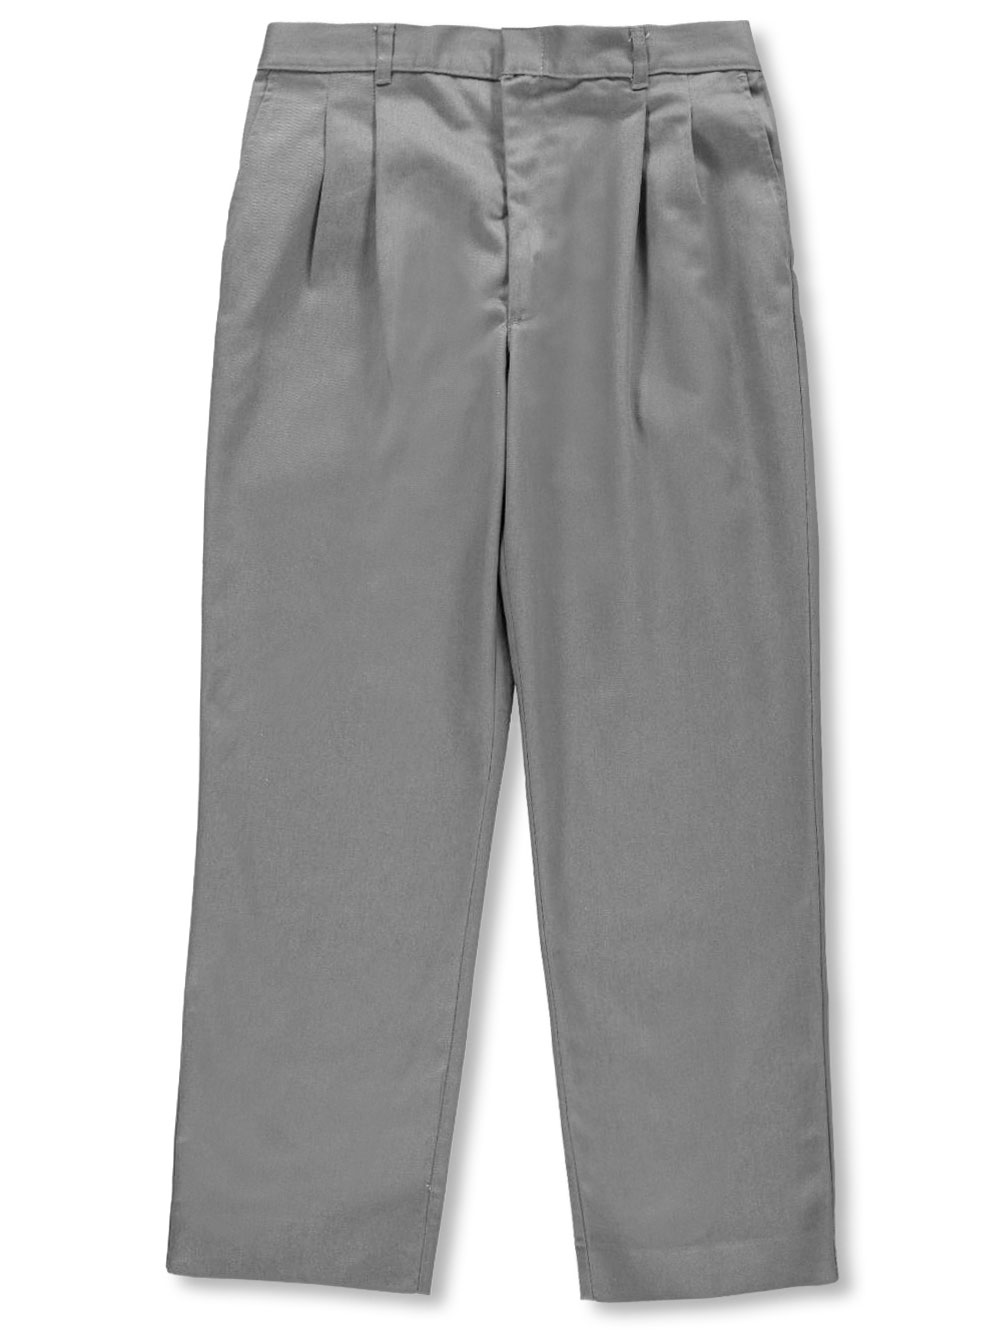 Rifle Pants